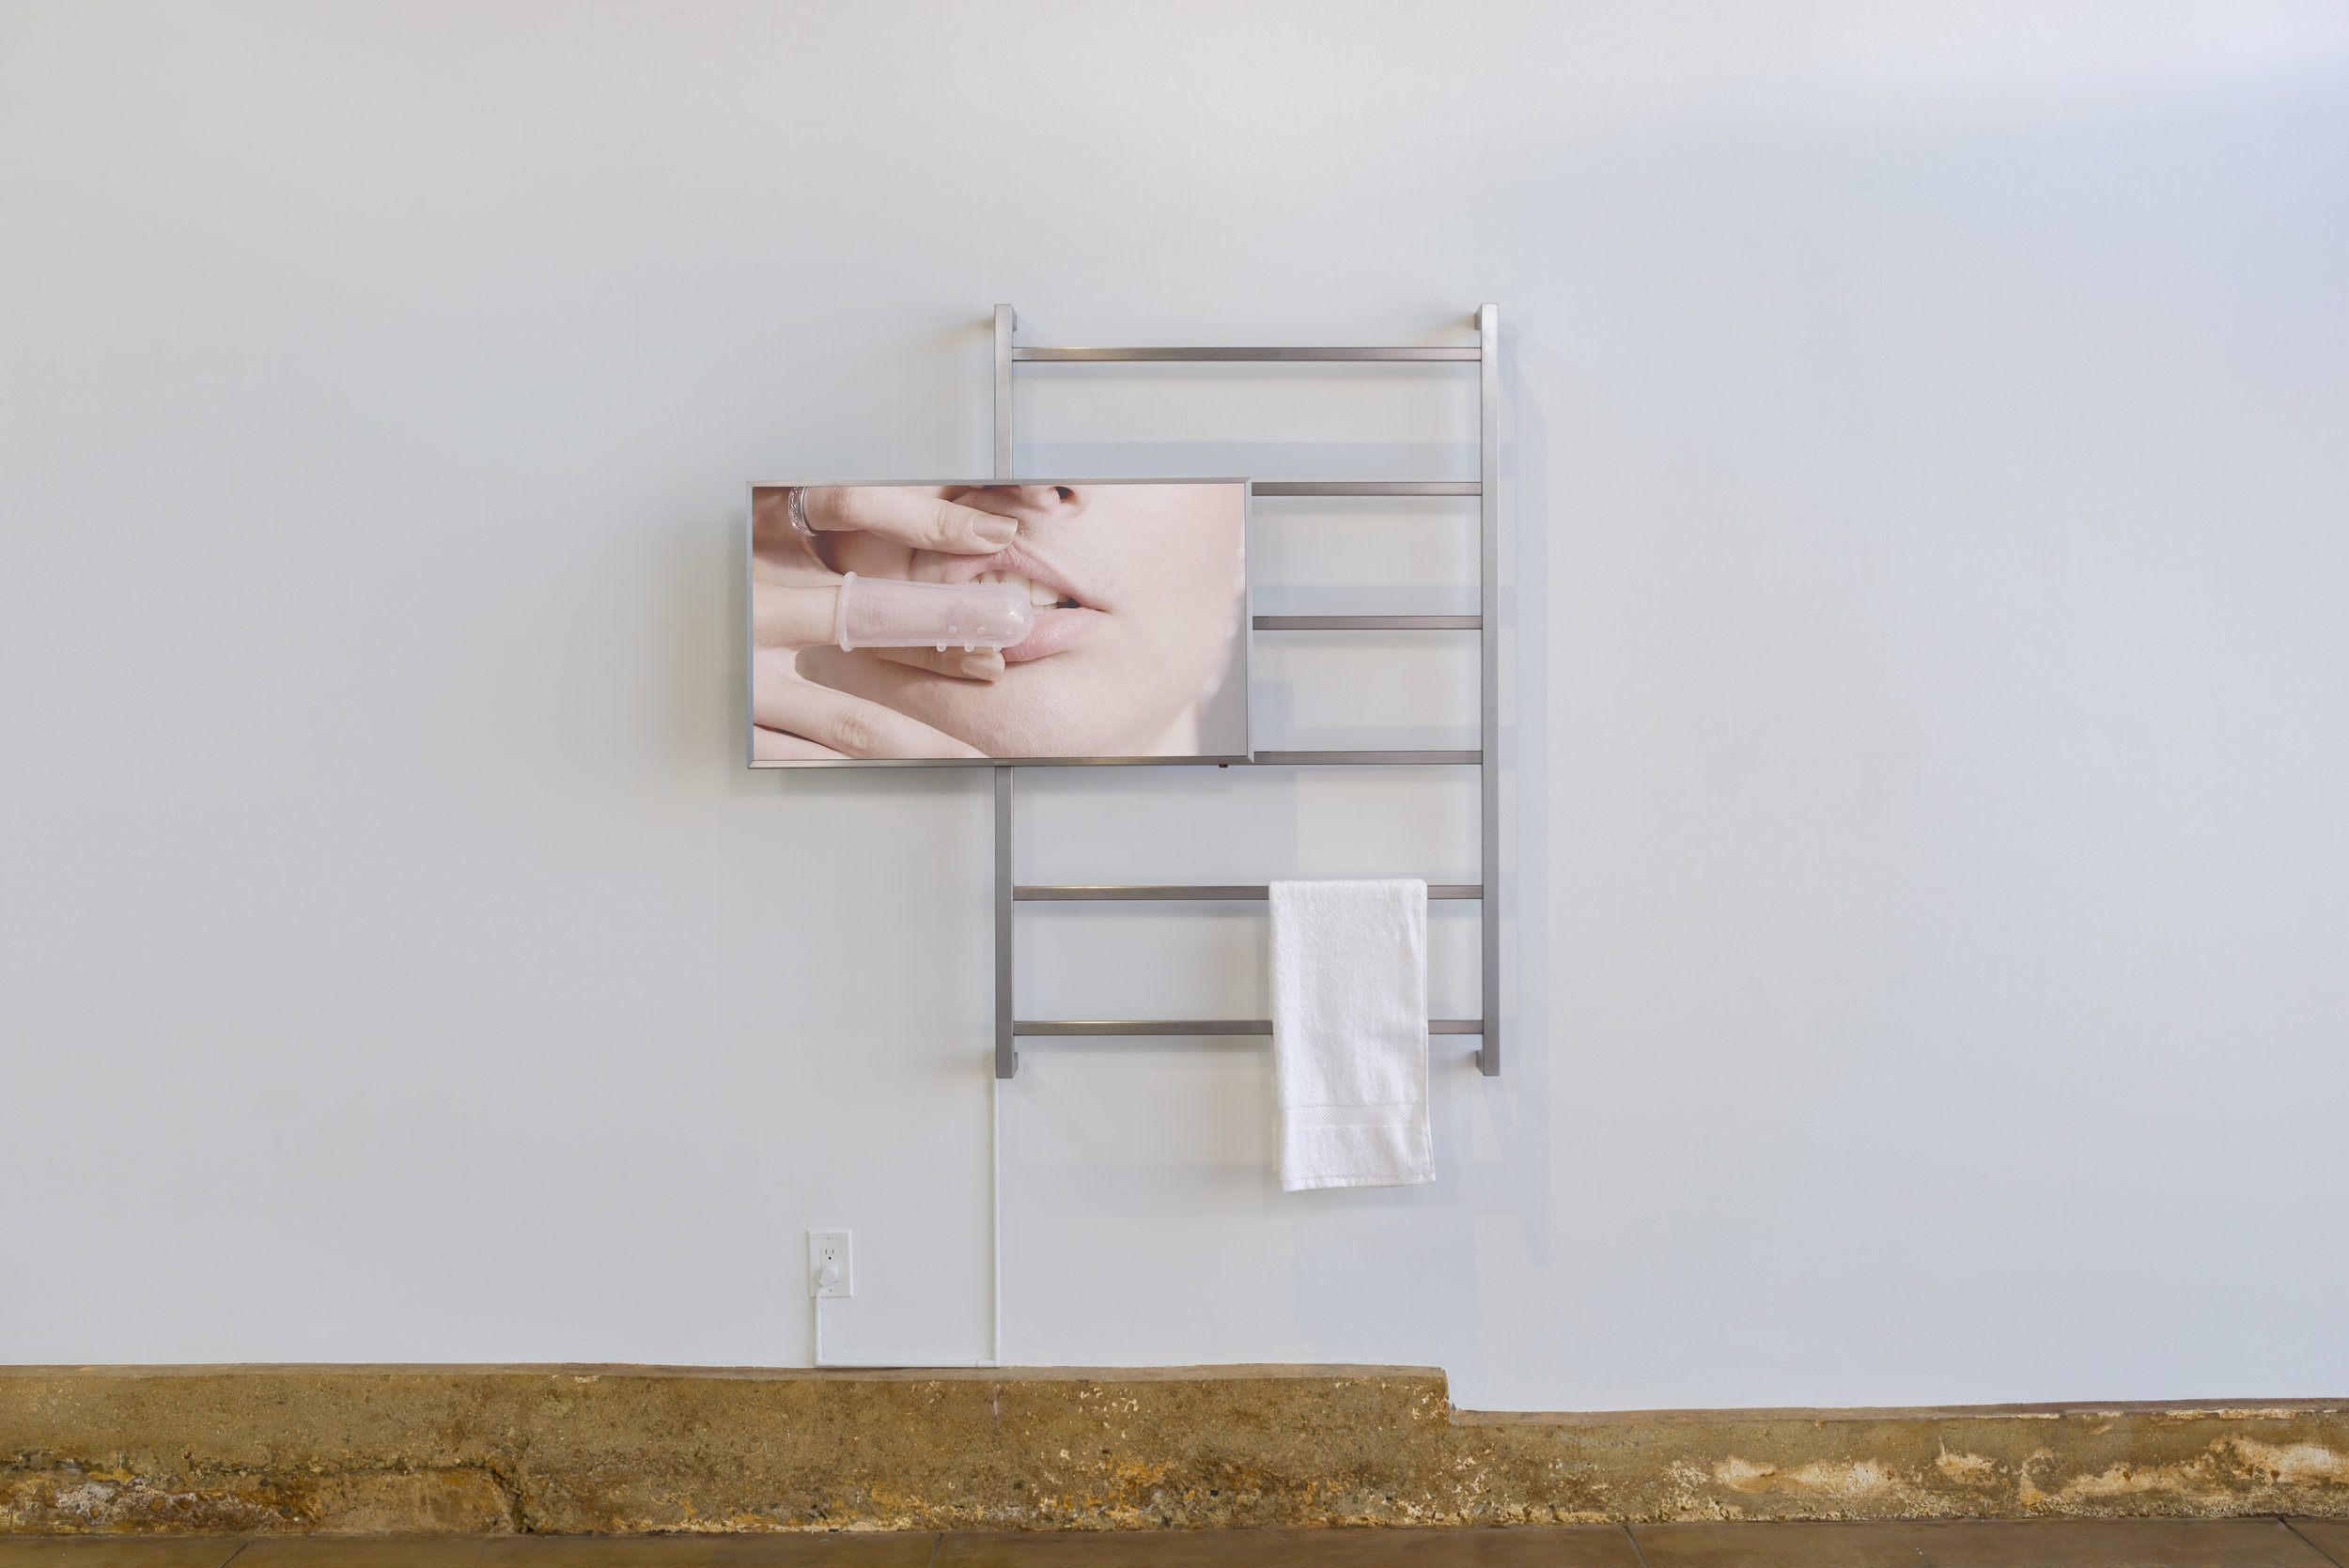 Amanda VIncelli  HYGIENA 2017 Single-channel HD video, brushed  steel, towel 6:11, loop, dimensions variable Ed. 5 + 2AP; Unique sculptural edition